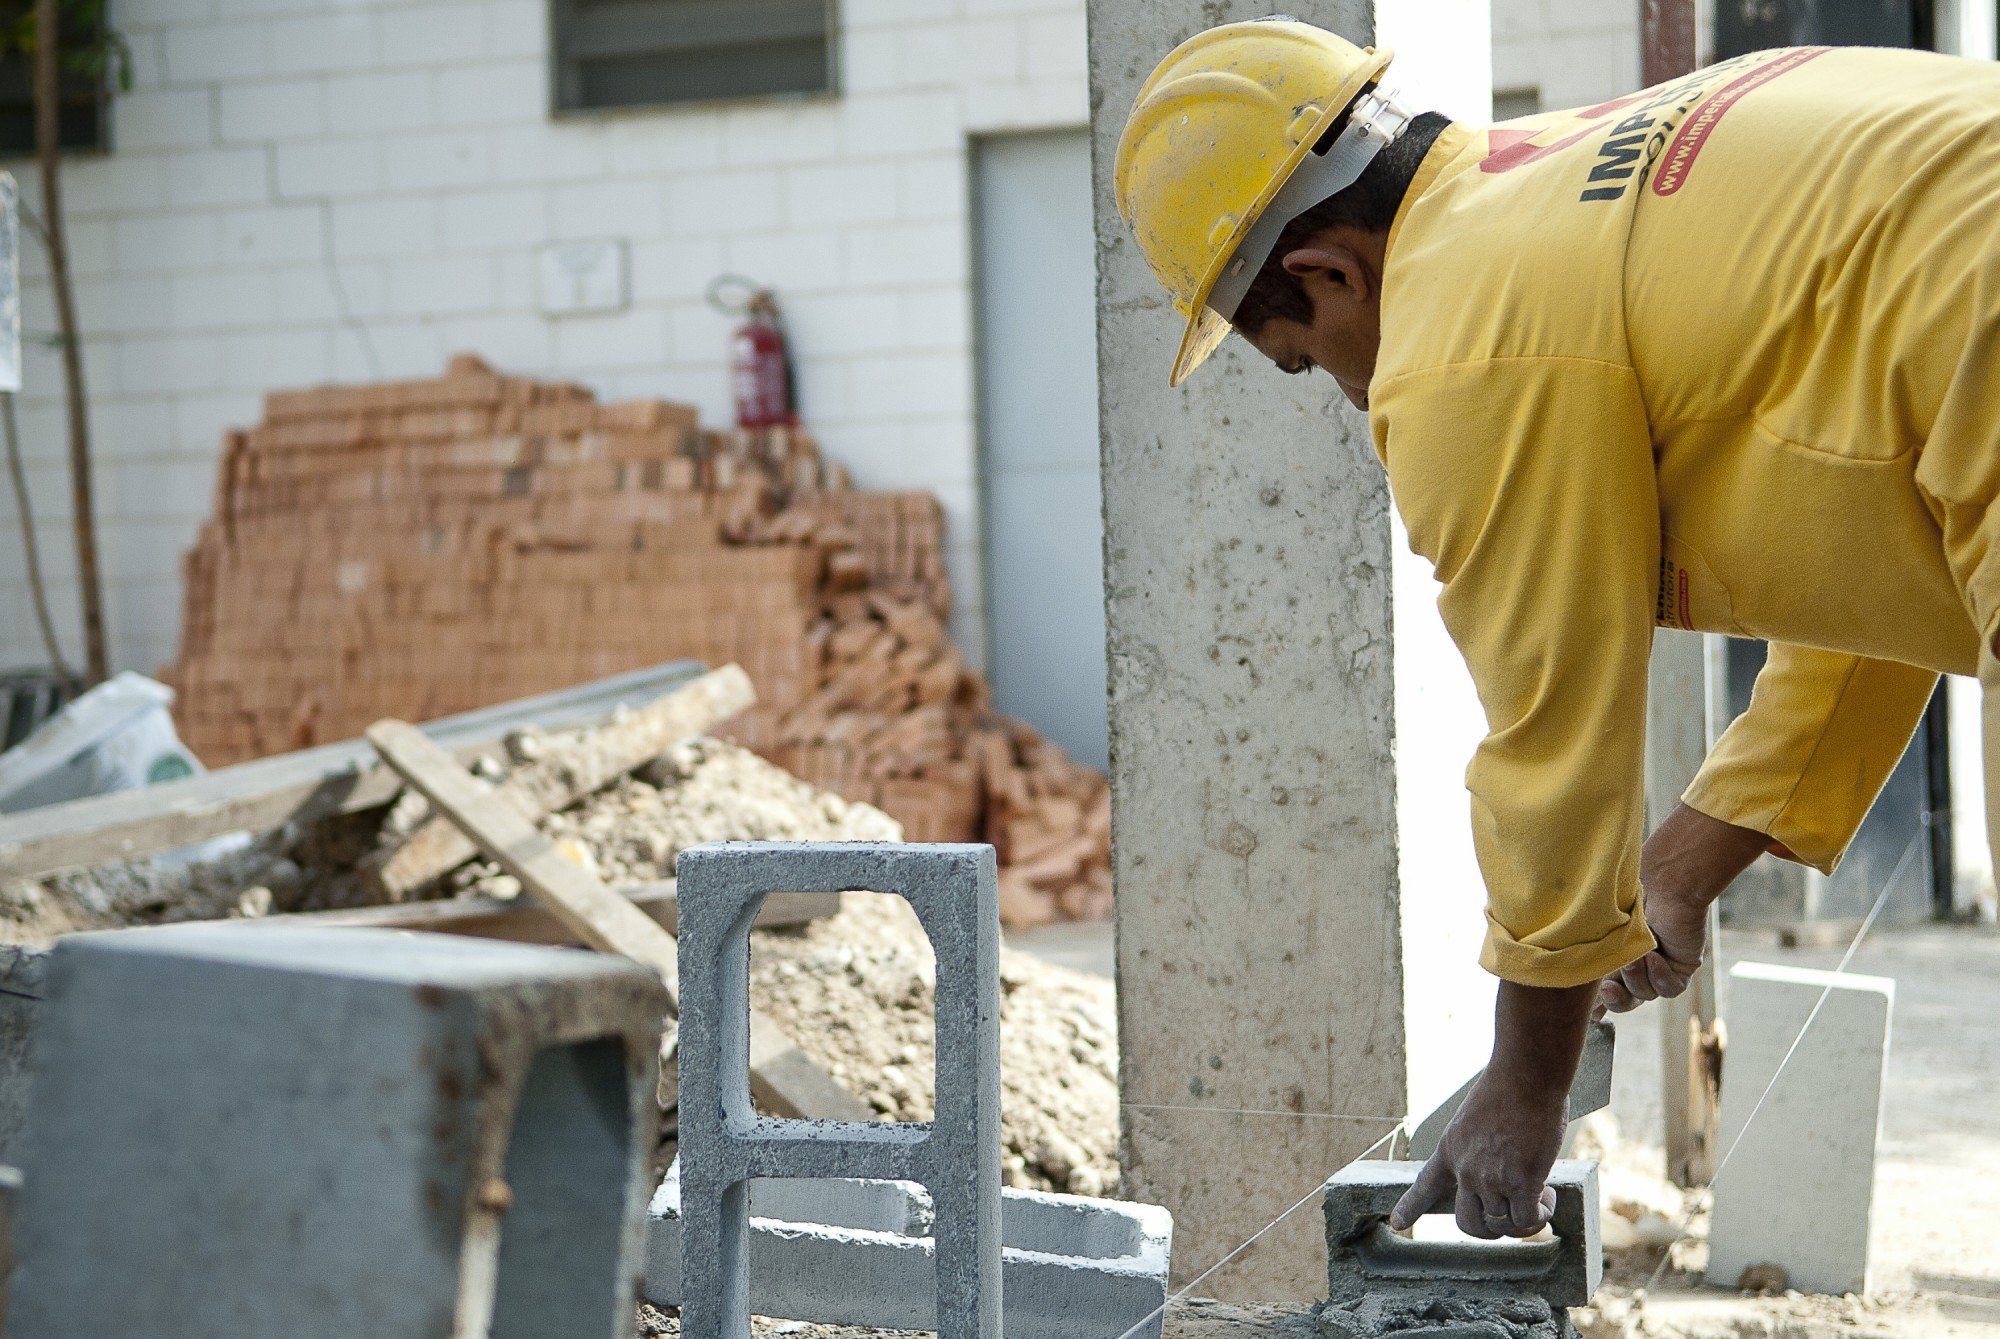 The construction sector is expected to be one of the sector's most affected by unemployment this year in Brazil, Brazil News